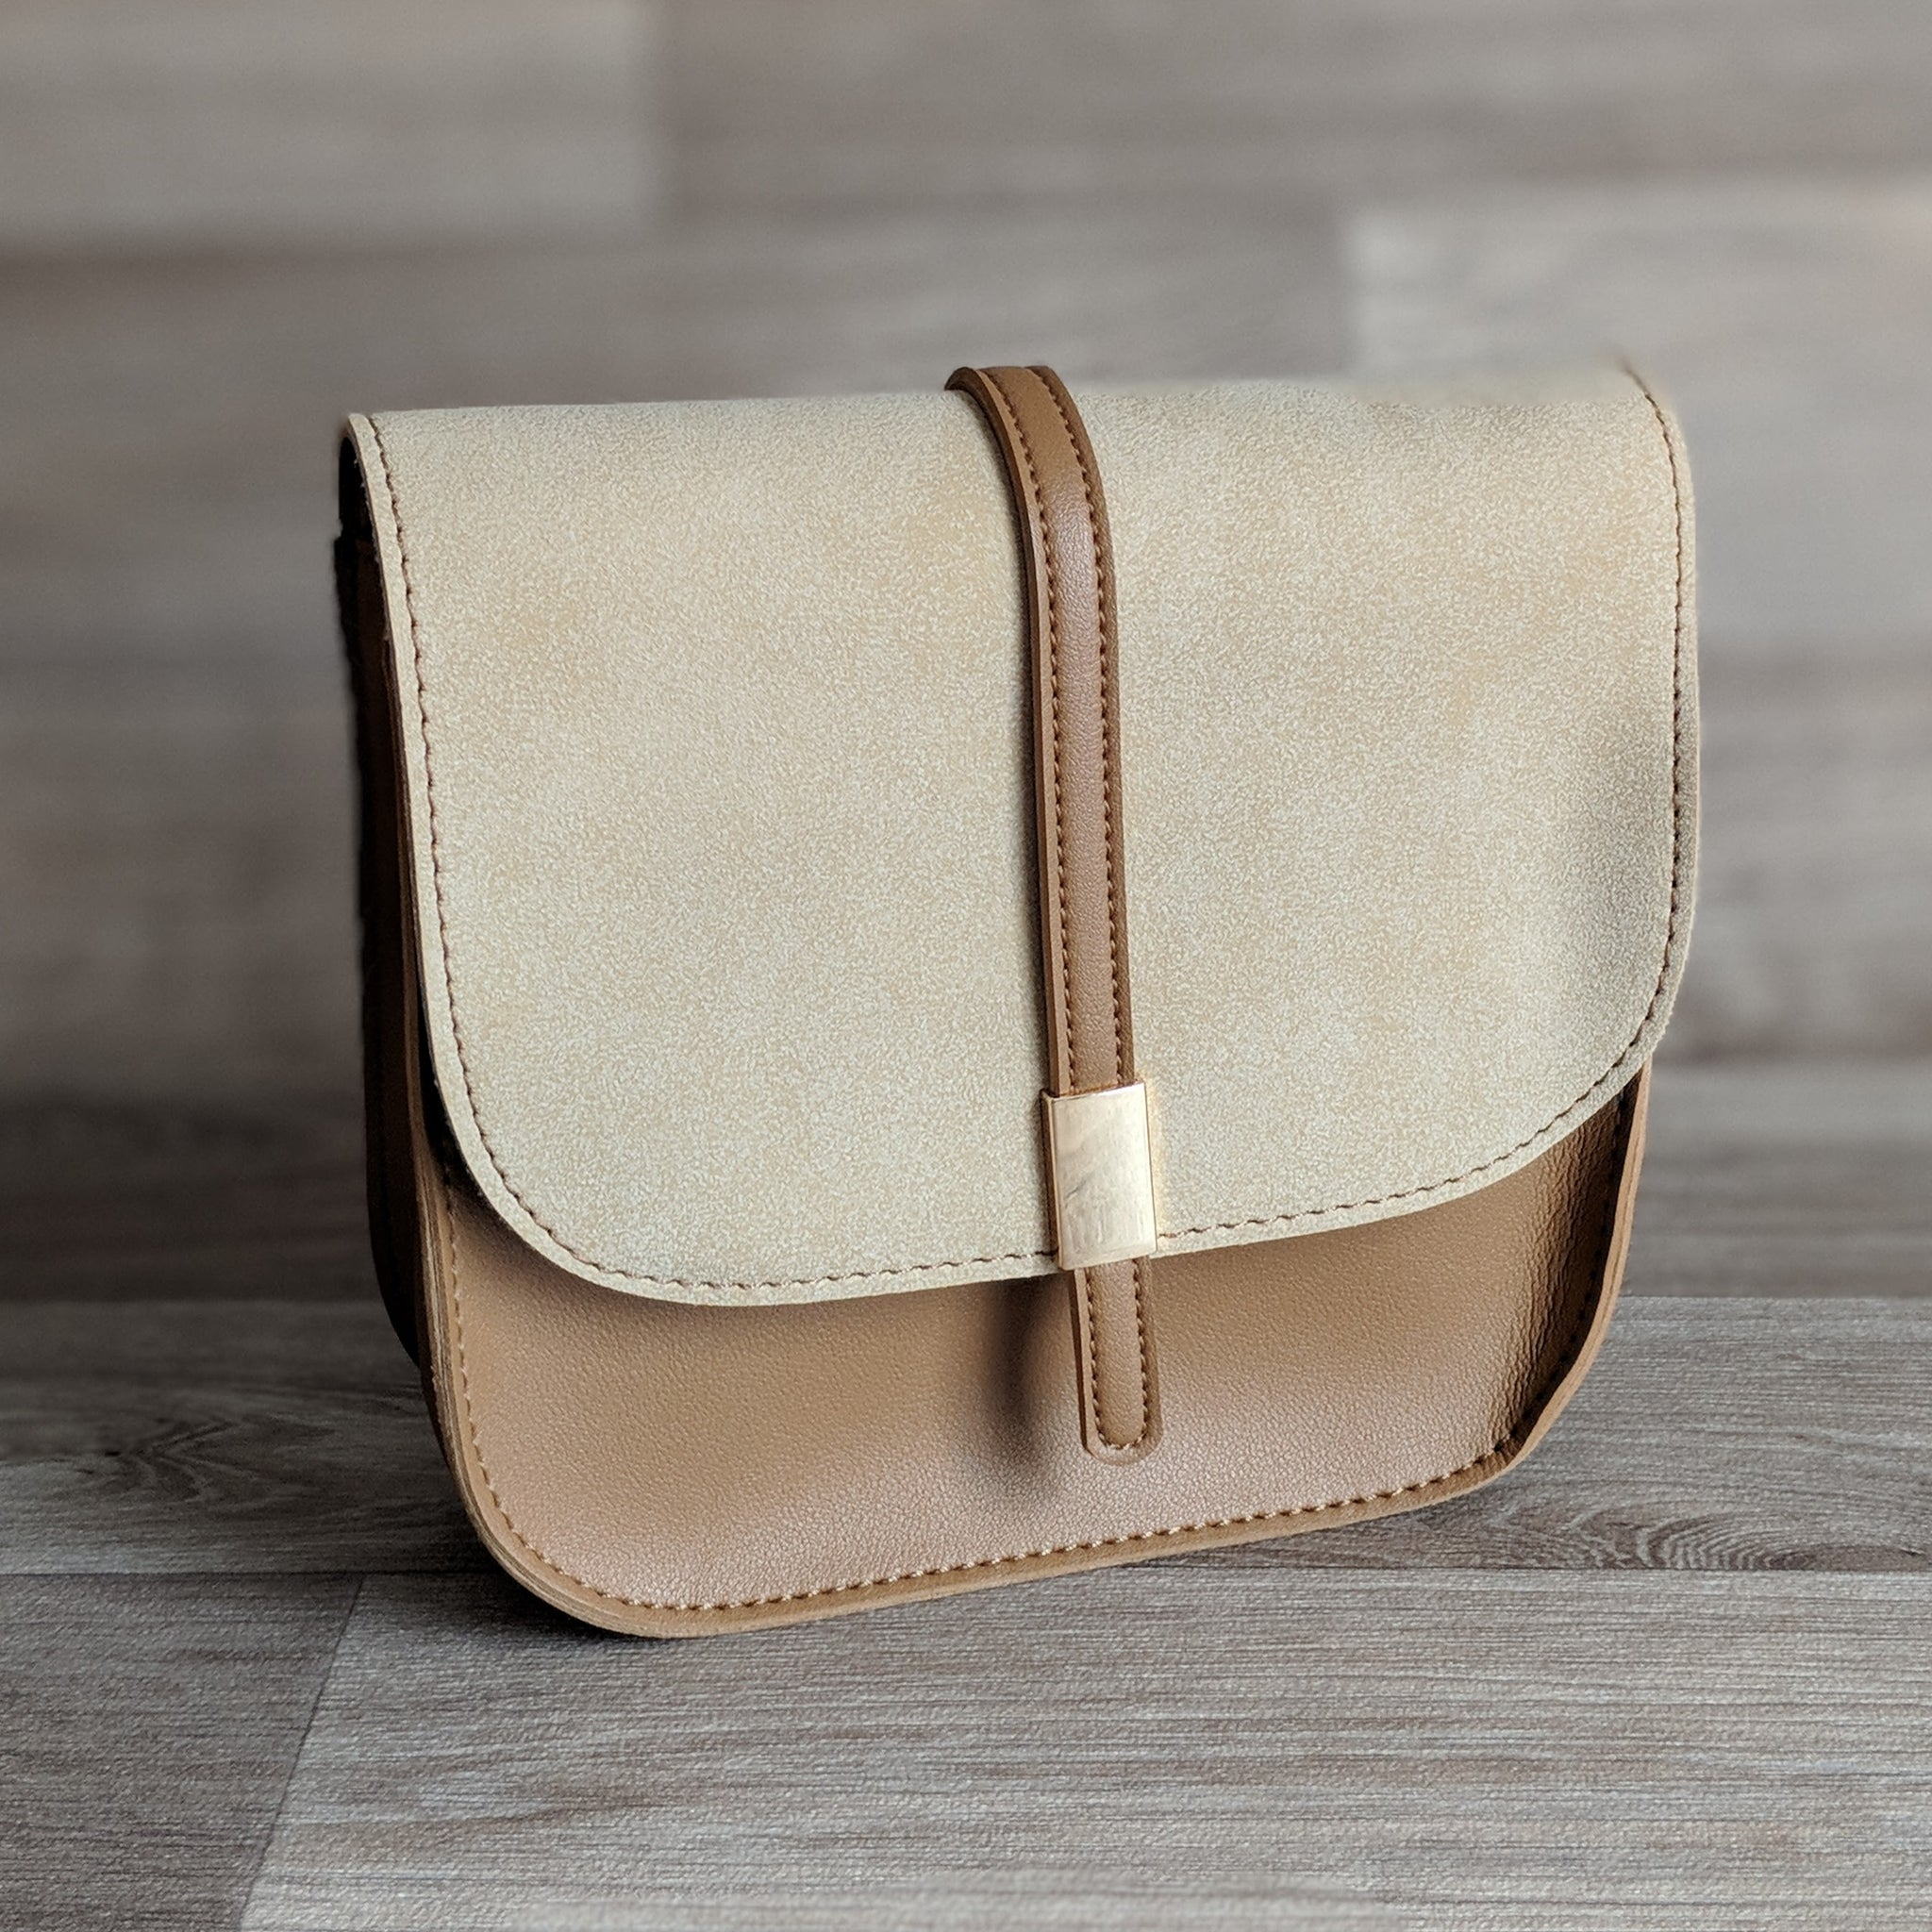 SMALL SATCHEL HANDBAG (BEIGE)